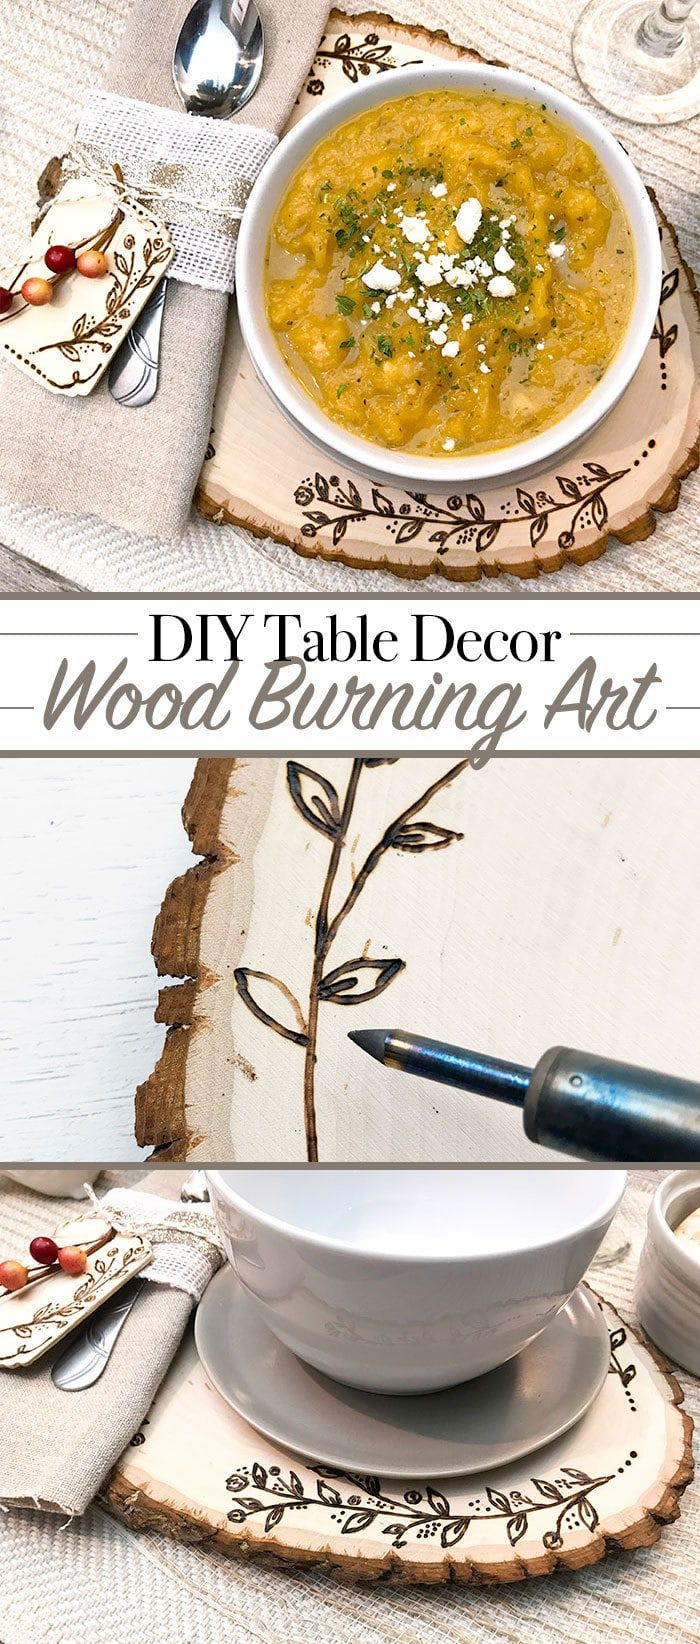 DIY Wood Burning Art Table Decor and Place Settings - designed by Jen Goode